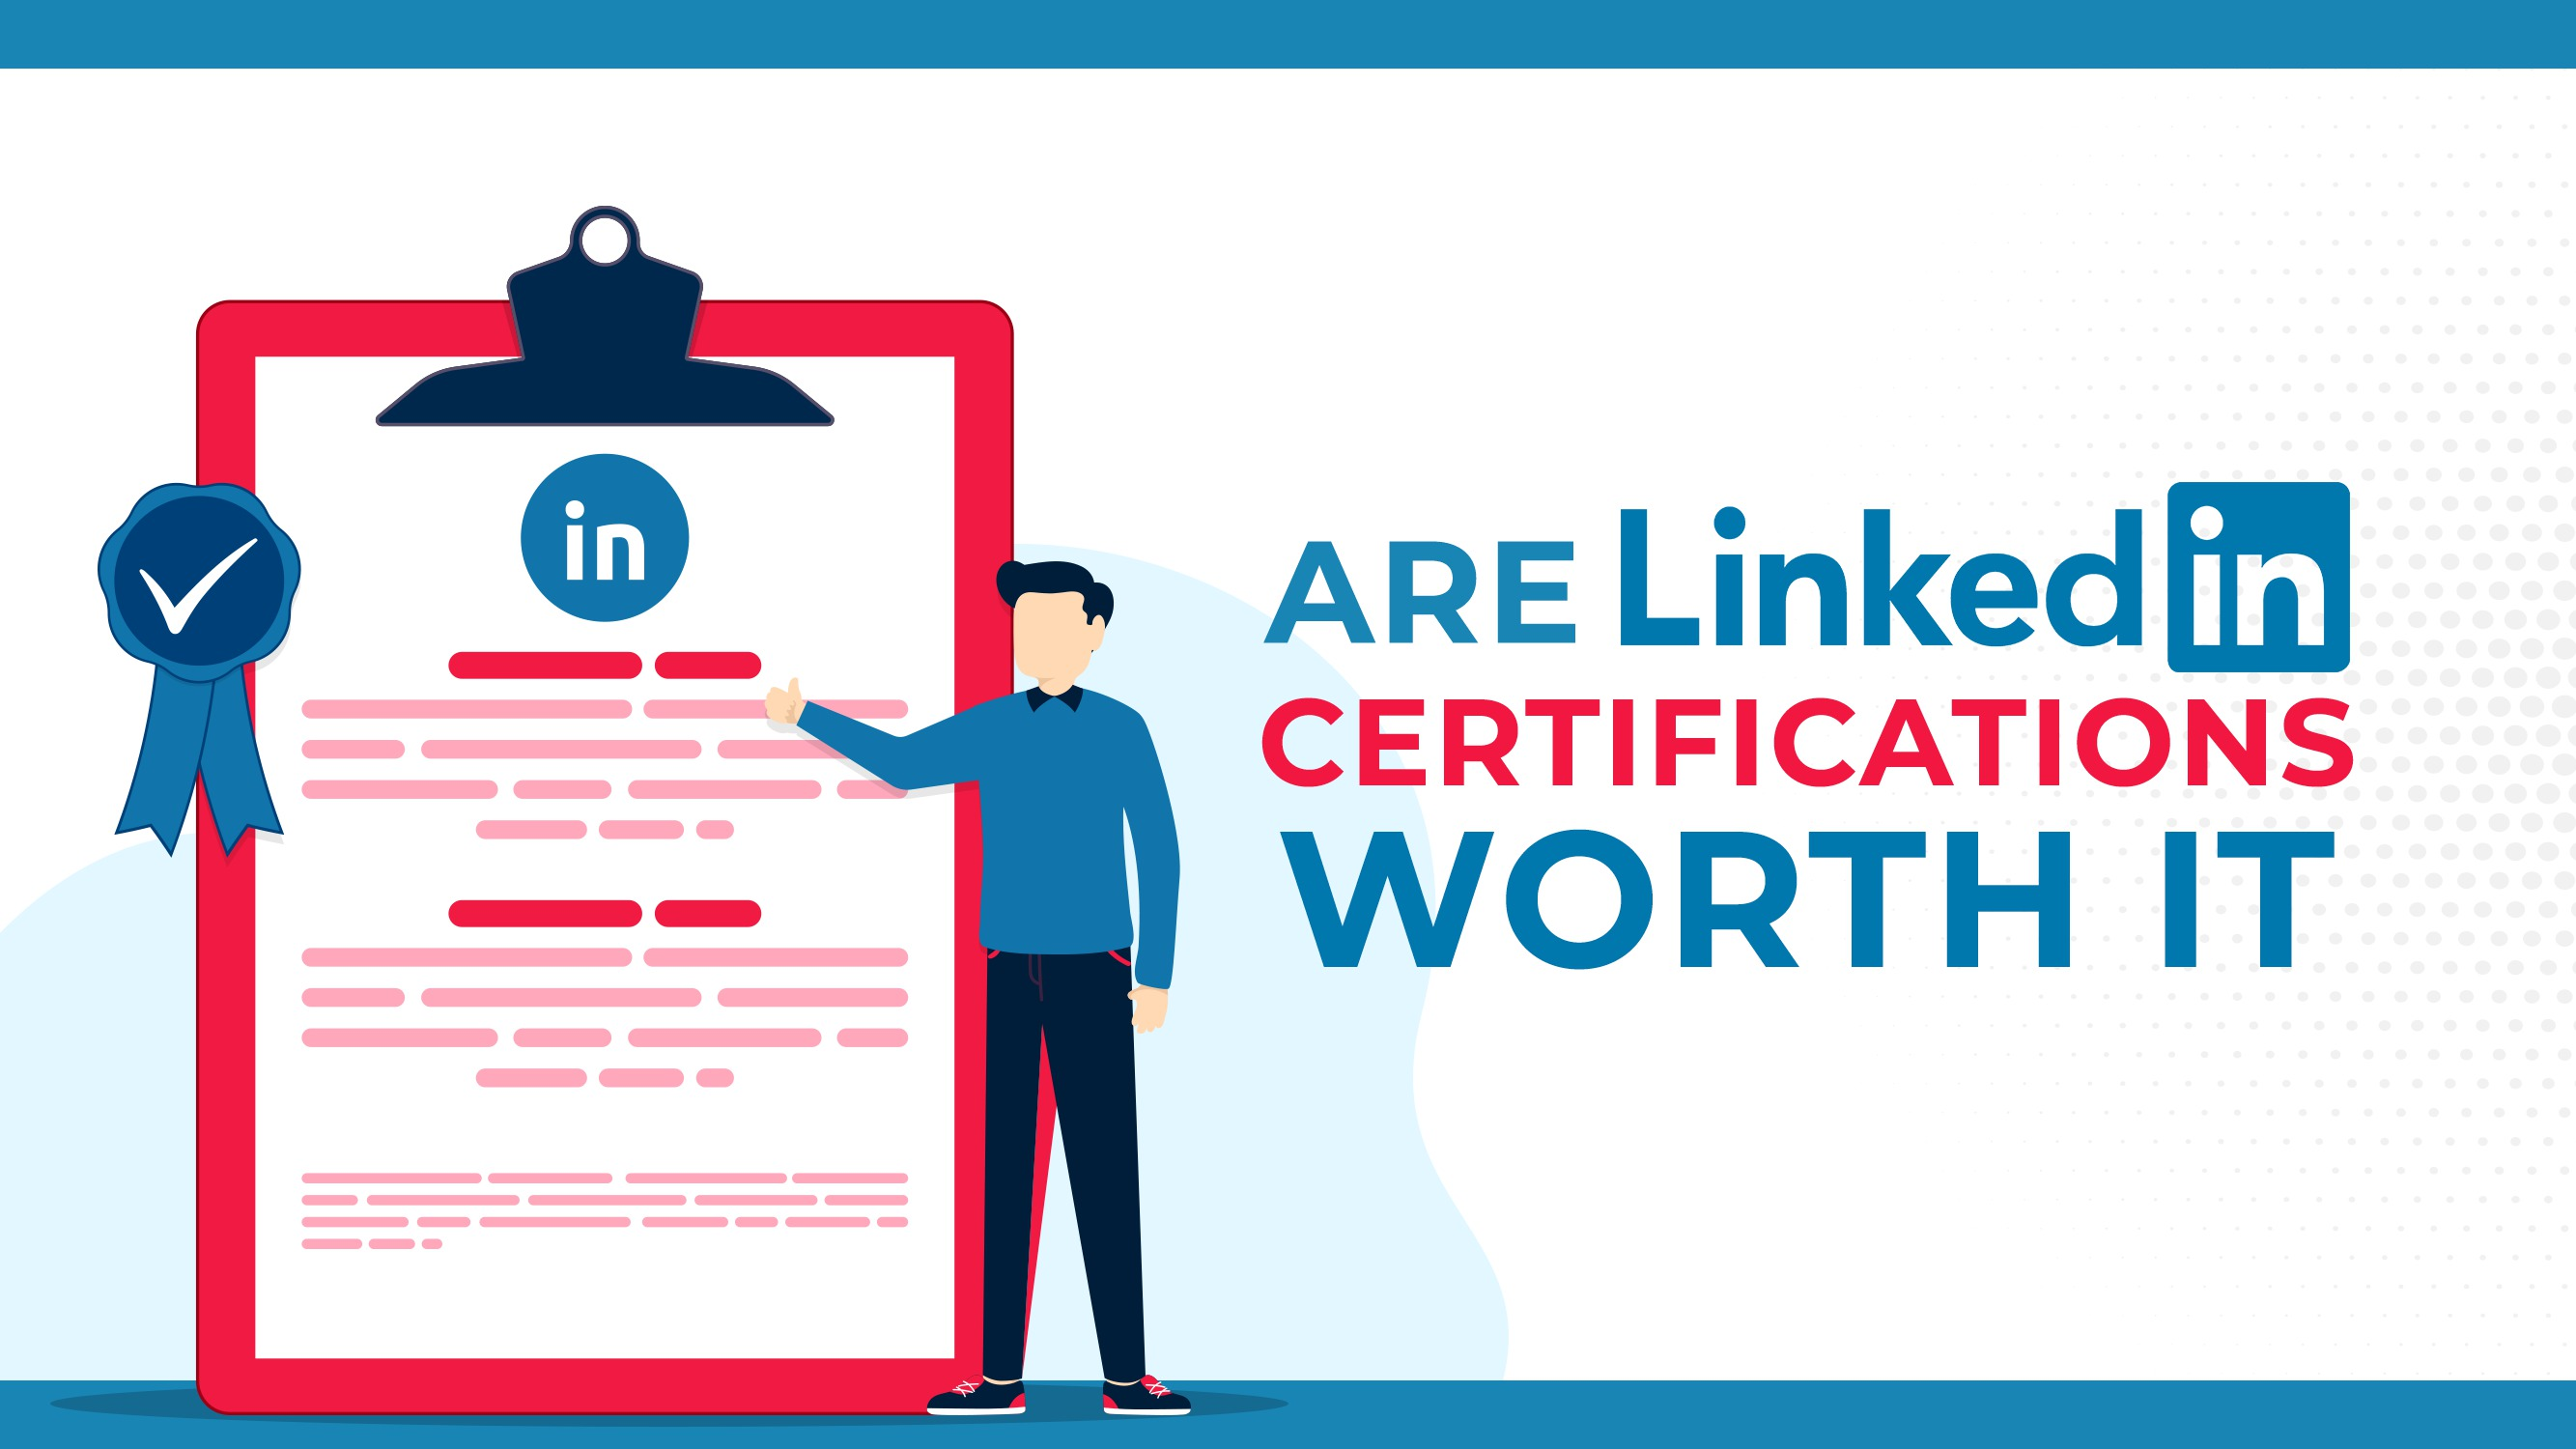 Are LinkedIn Certifications Worth It?